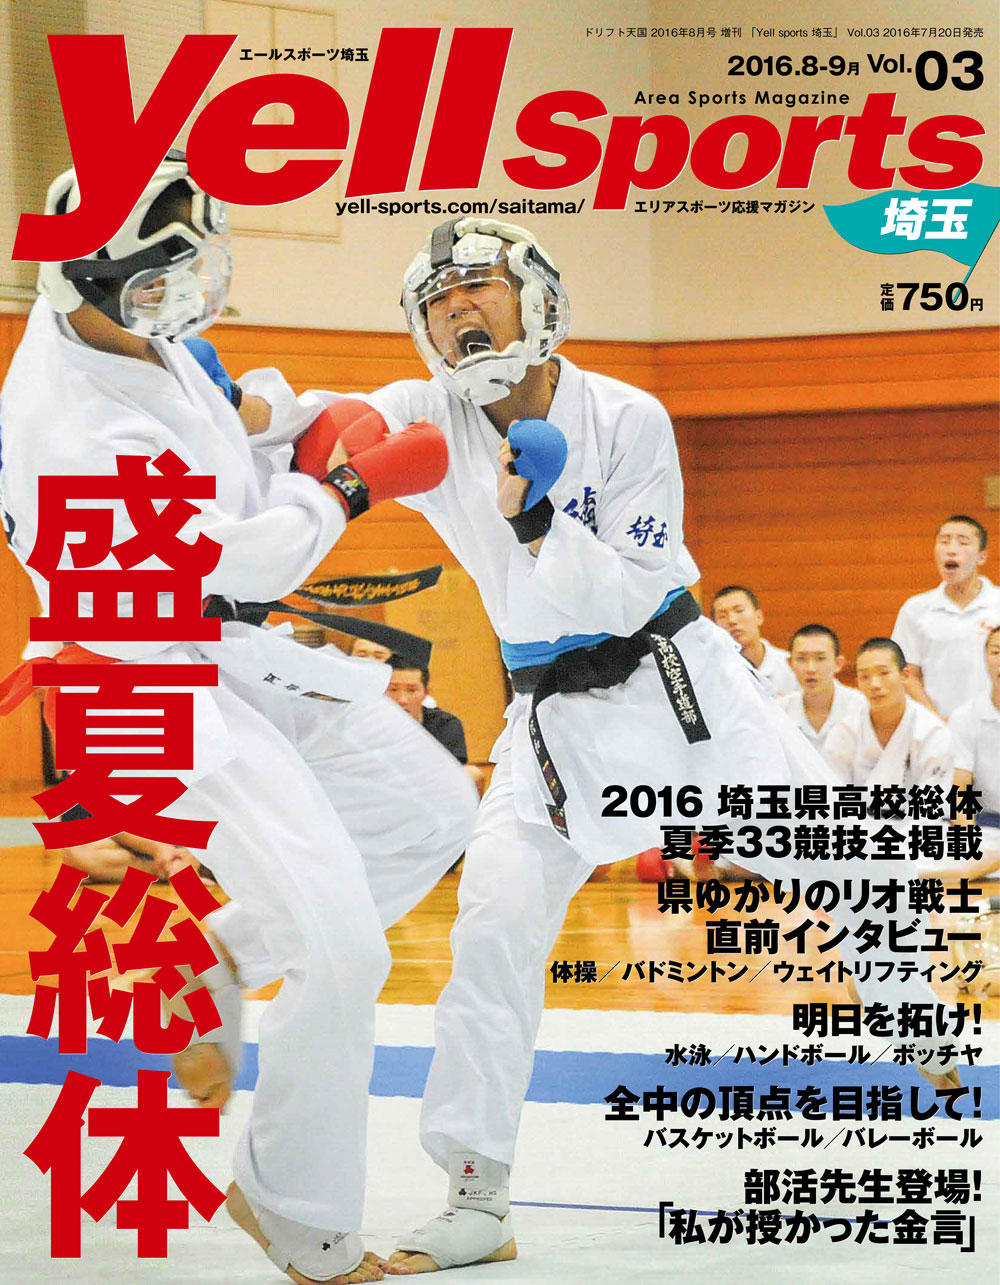 http://yell-sports.com/saitama/article/2016/yss03_H1.jpg